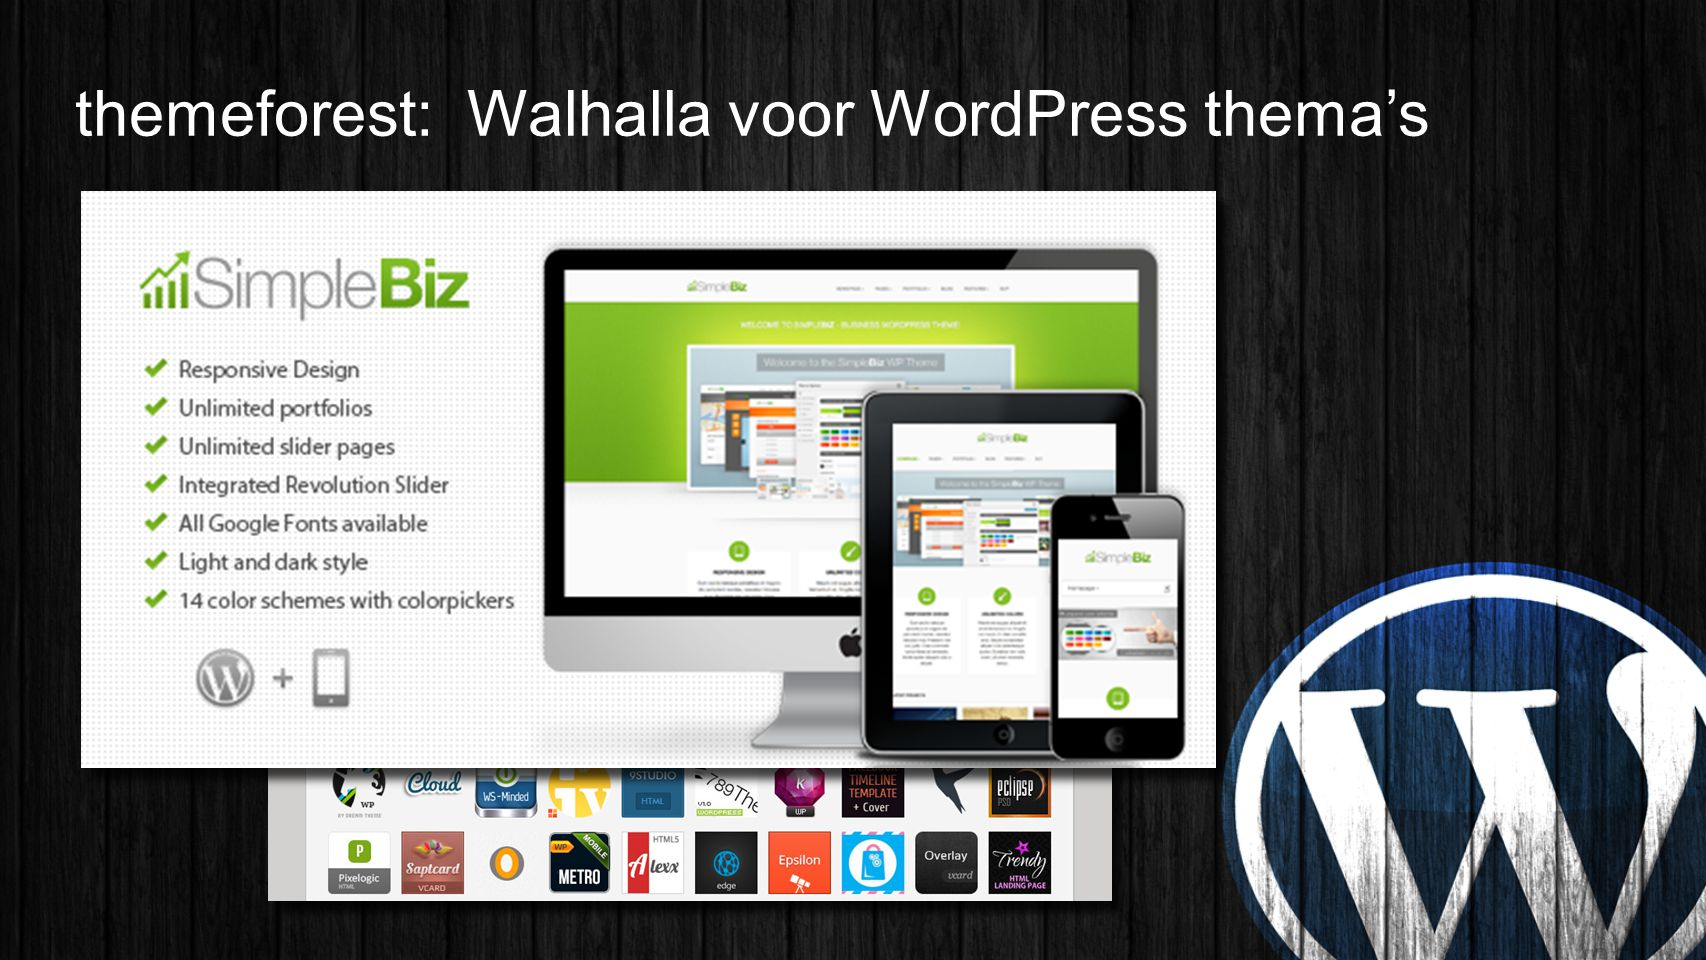 themeforest: Walhalla voor WordPress thema's